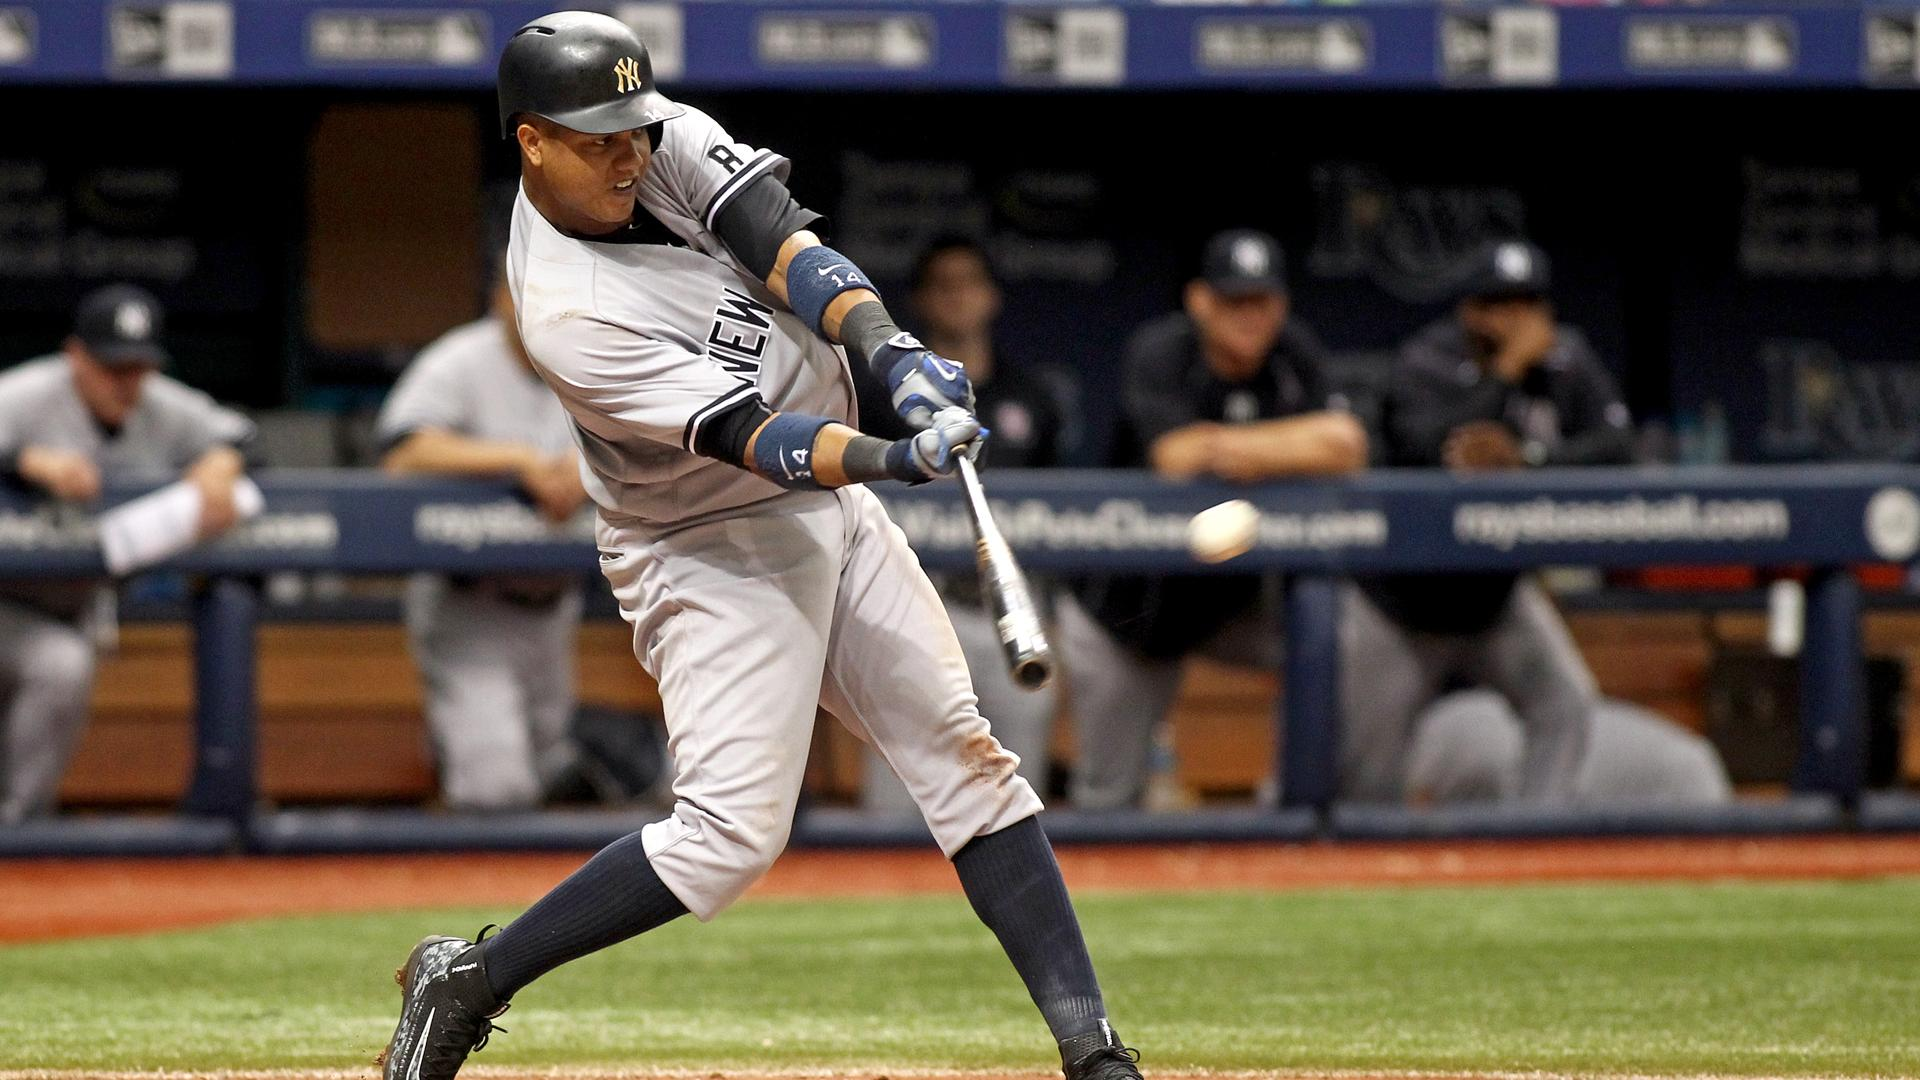 Yankees win with one hit, Correa leads Astros